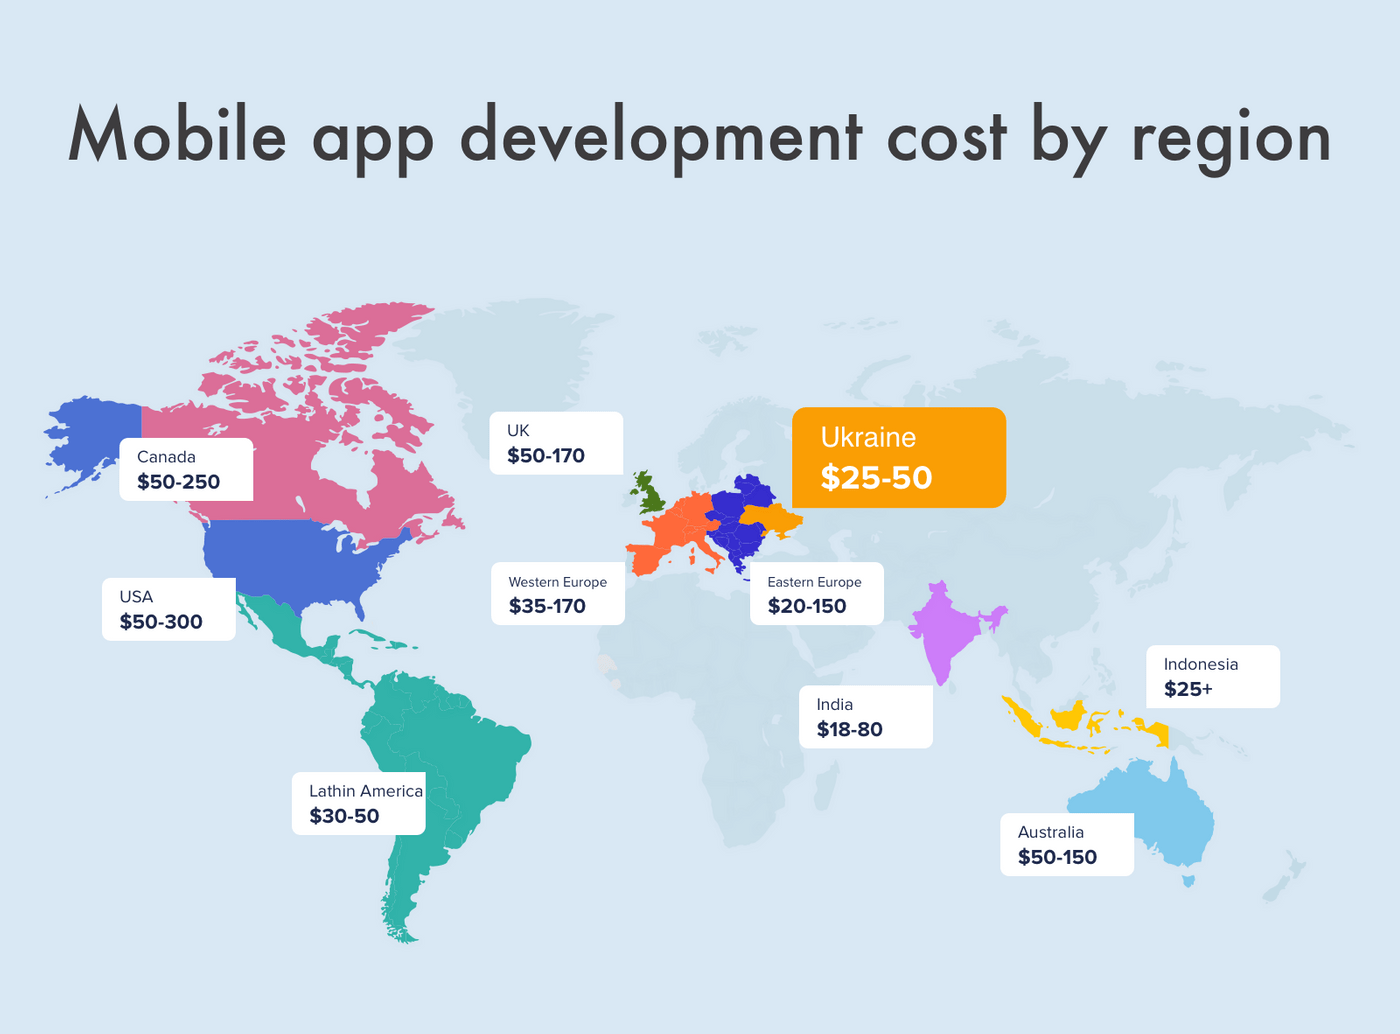 Mobile app cost rates